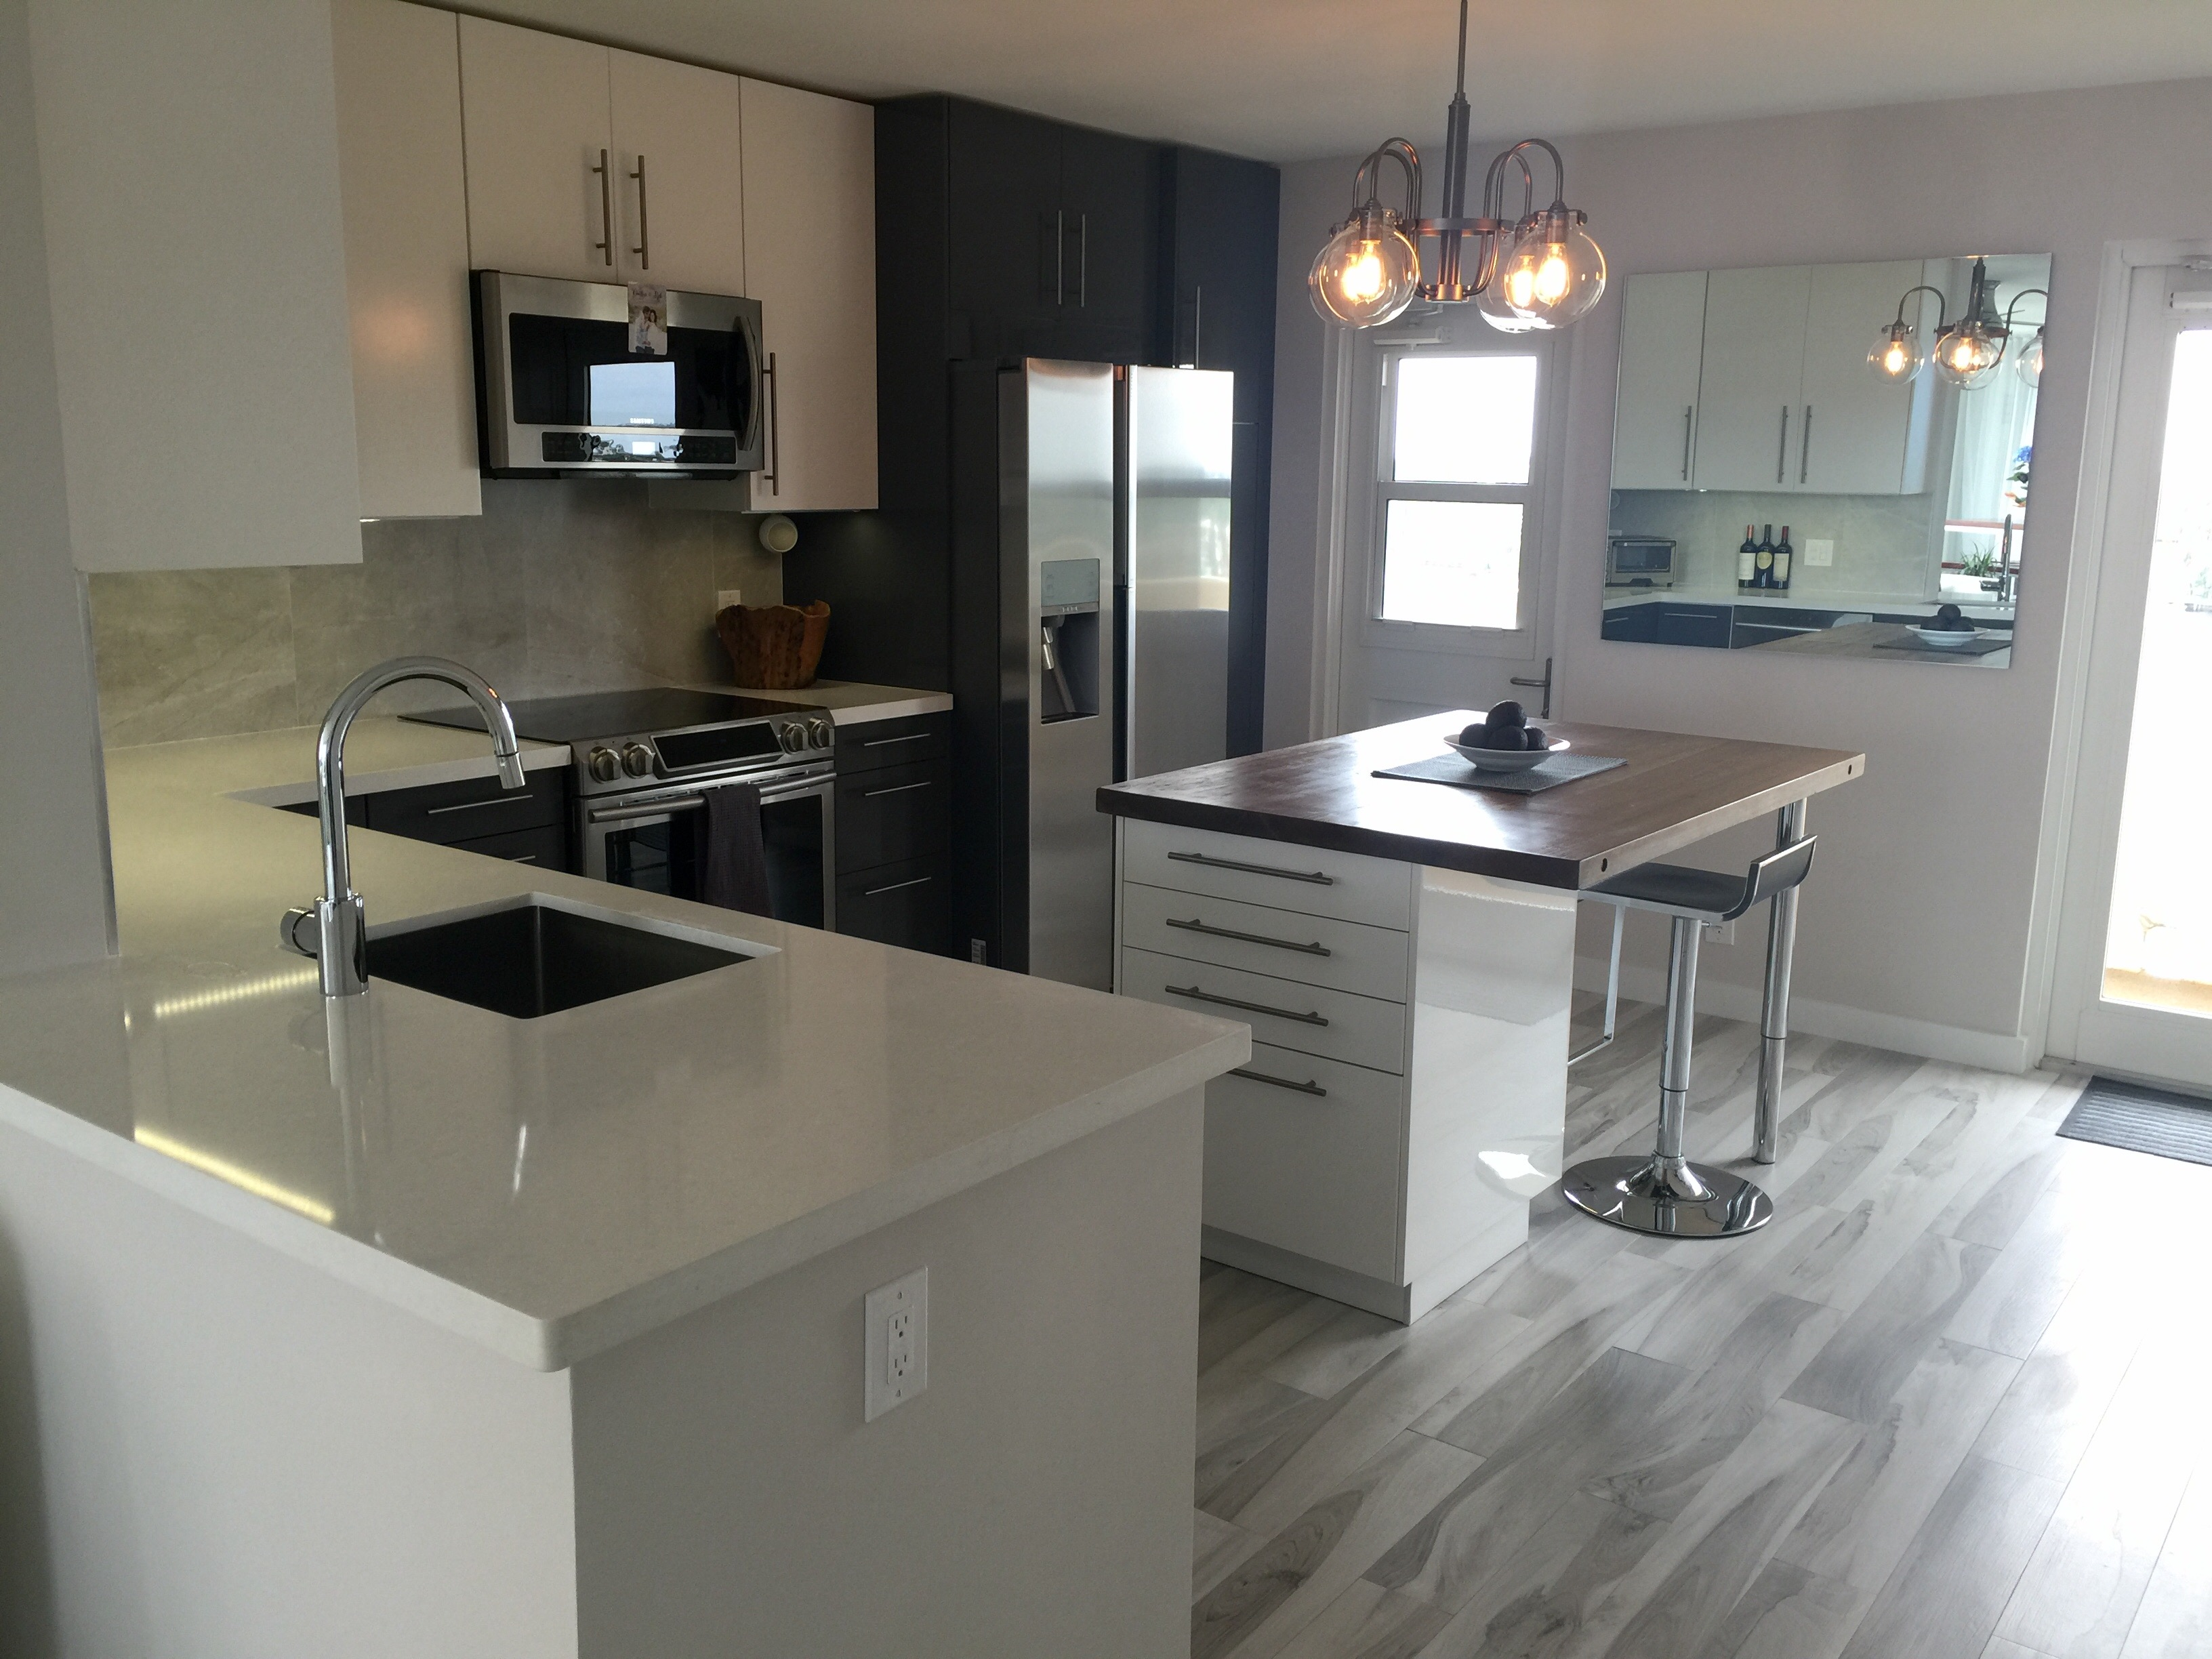 Design flair for a high rise condo ikea kitchen for Ikea cyber monday 2016